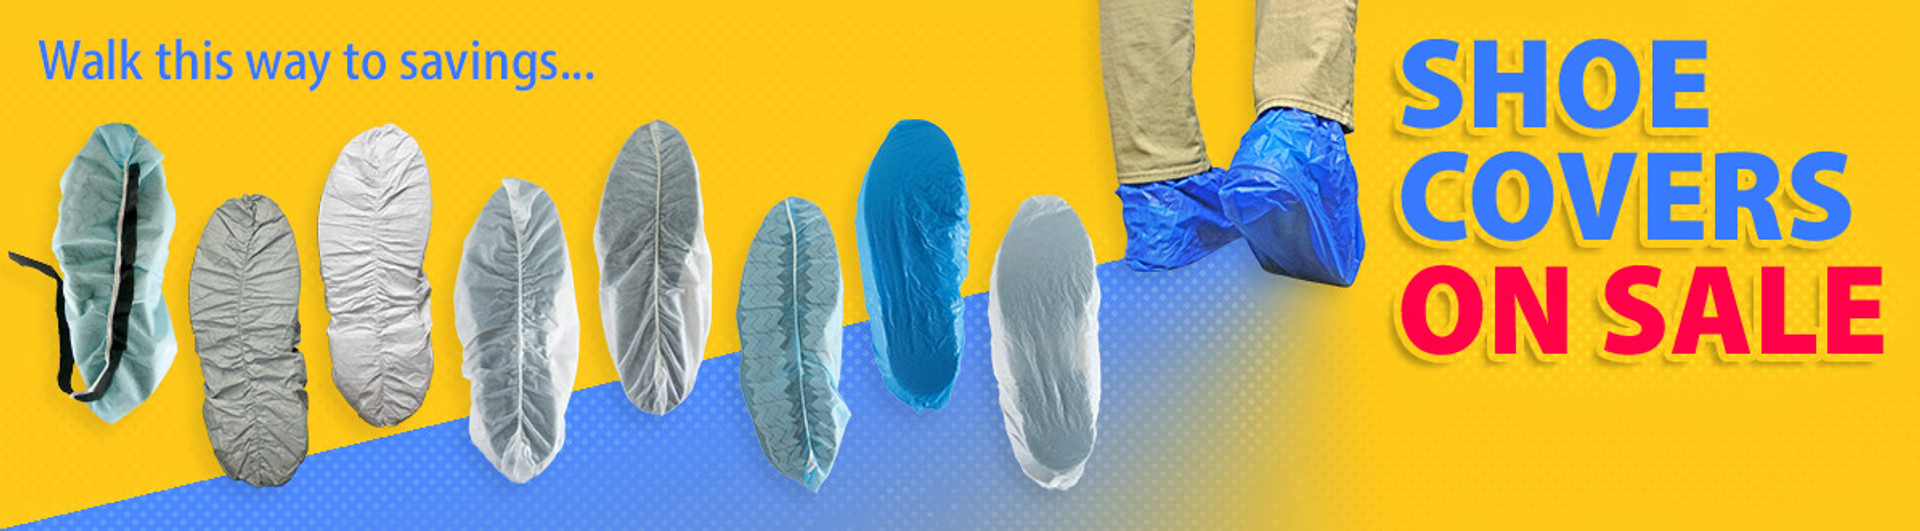 Shoe Covers On Sale